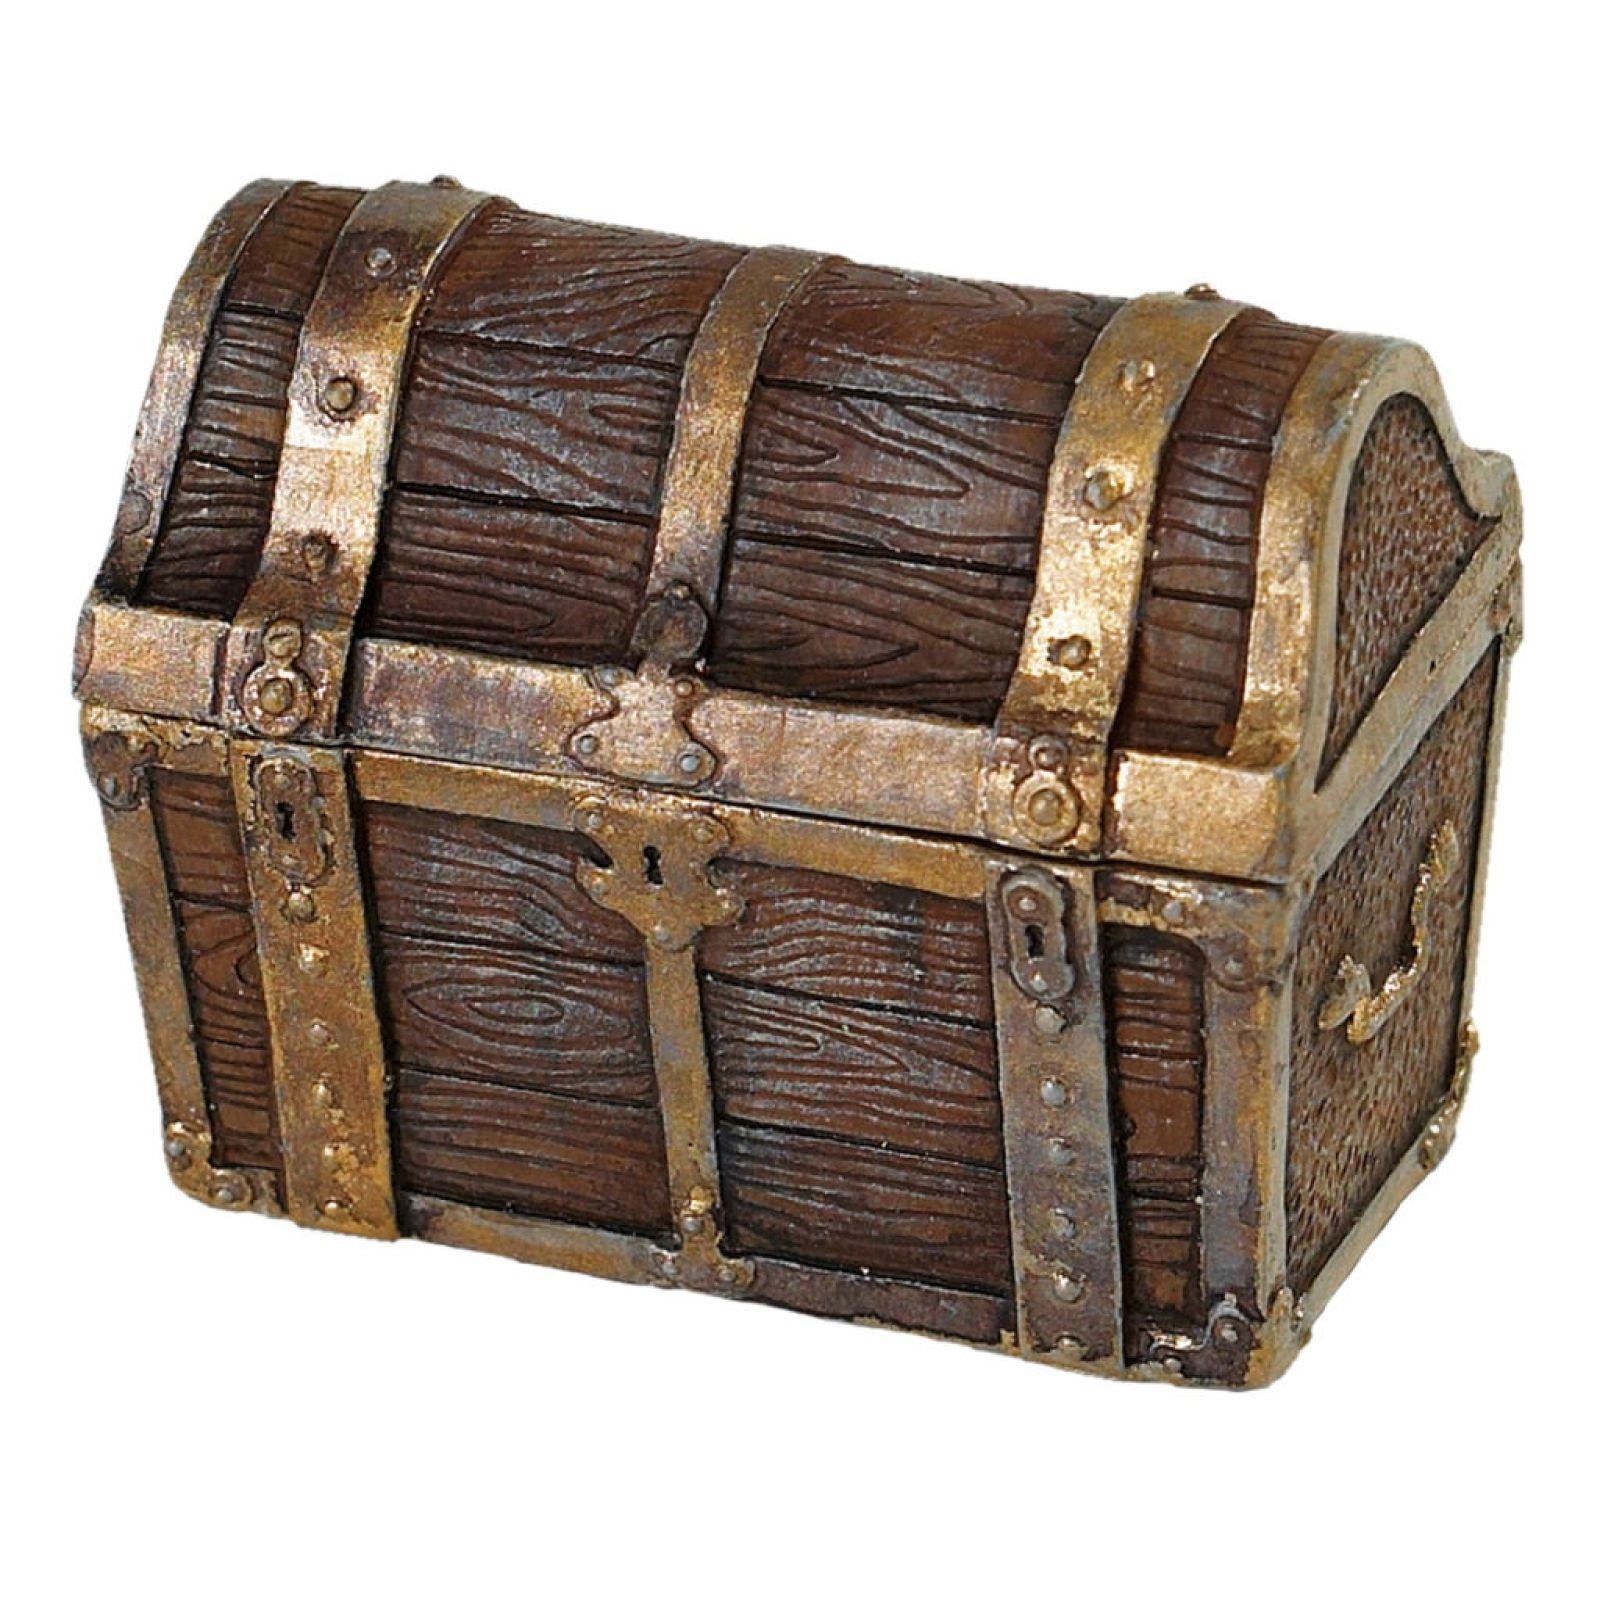 All Wood with all Brass Fittings Original Size Treasure Chest Handcrafted